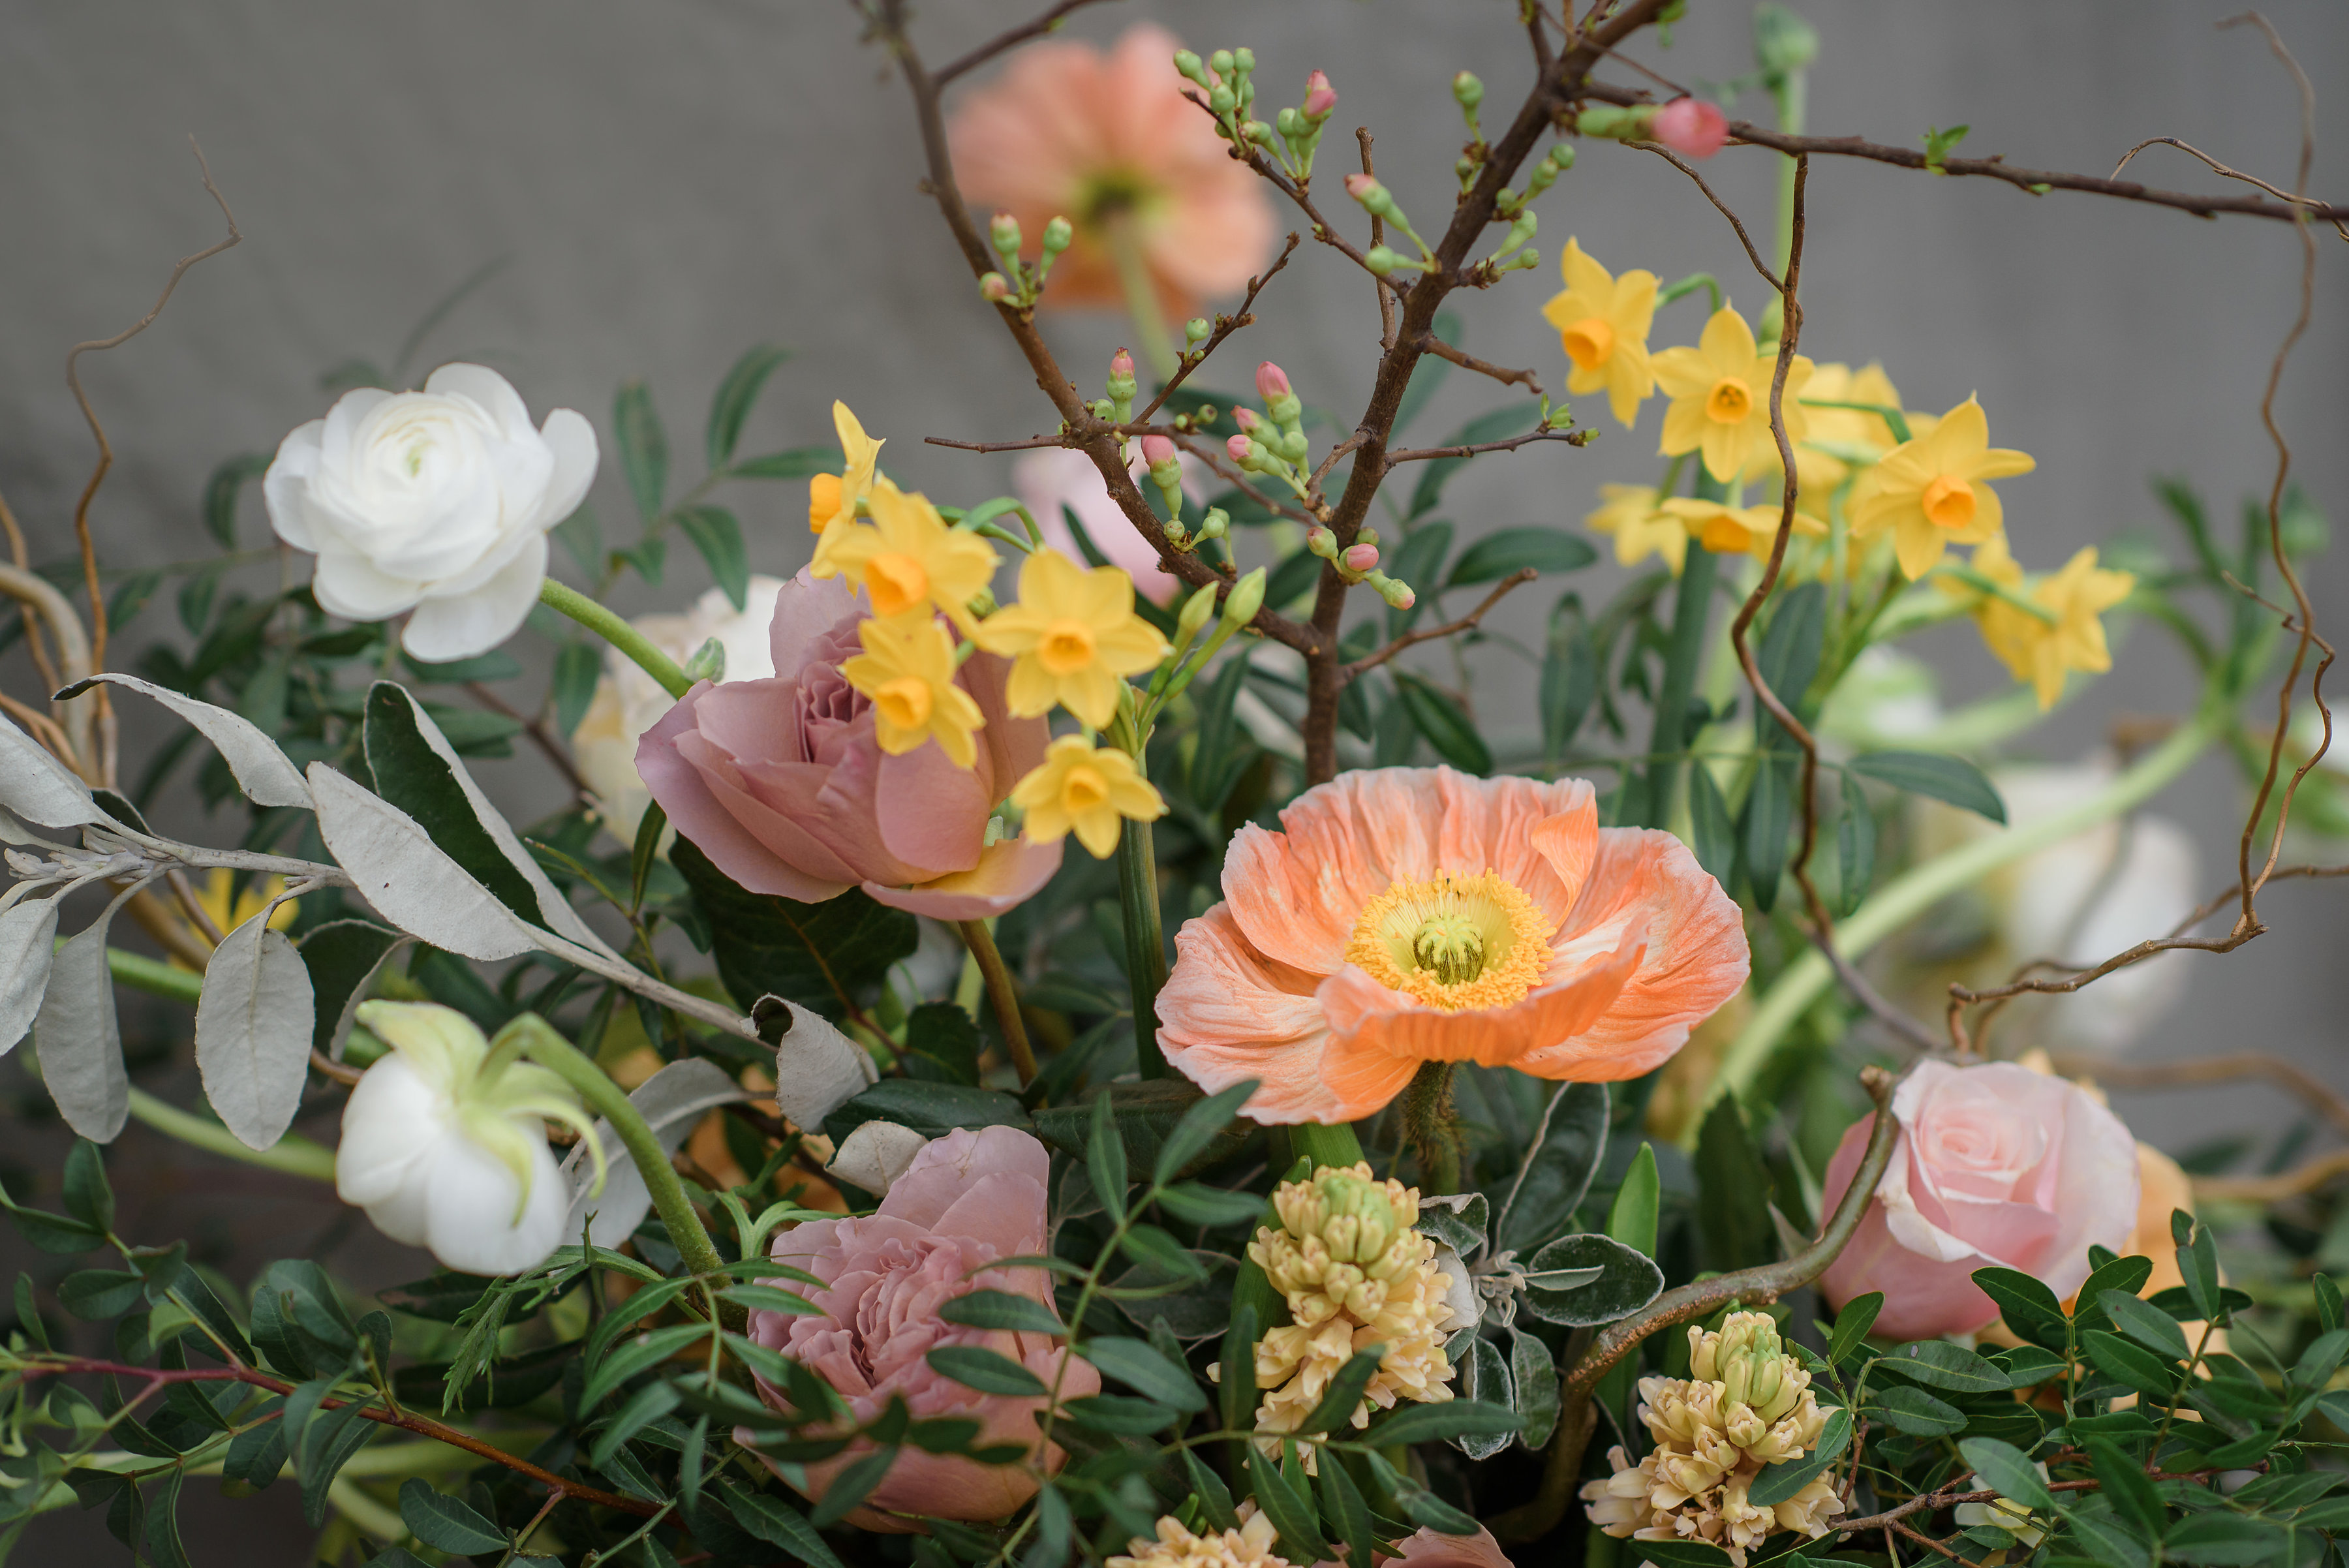 Peach and yellow lovely floral arrangement by Jane Farthing